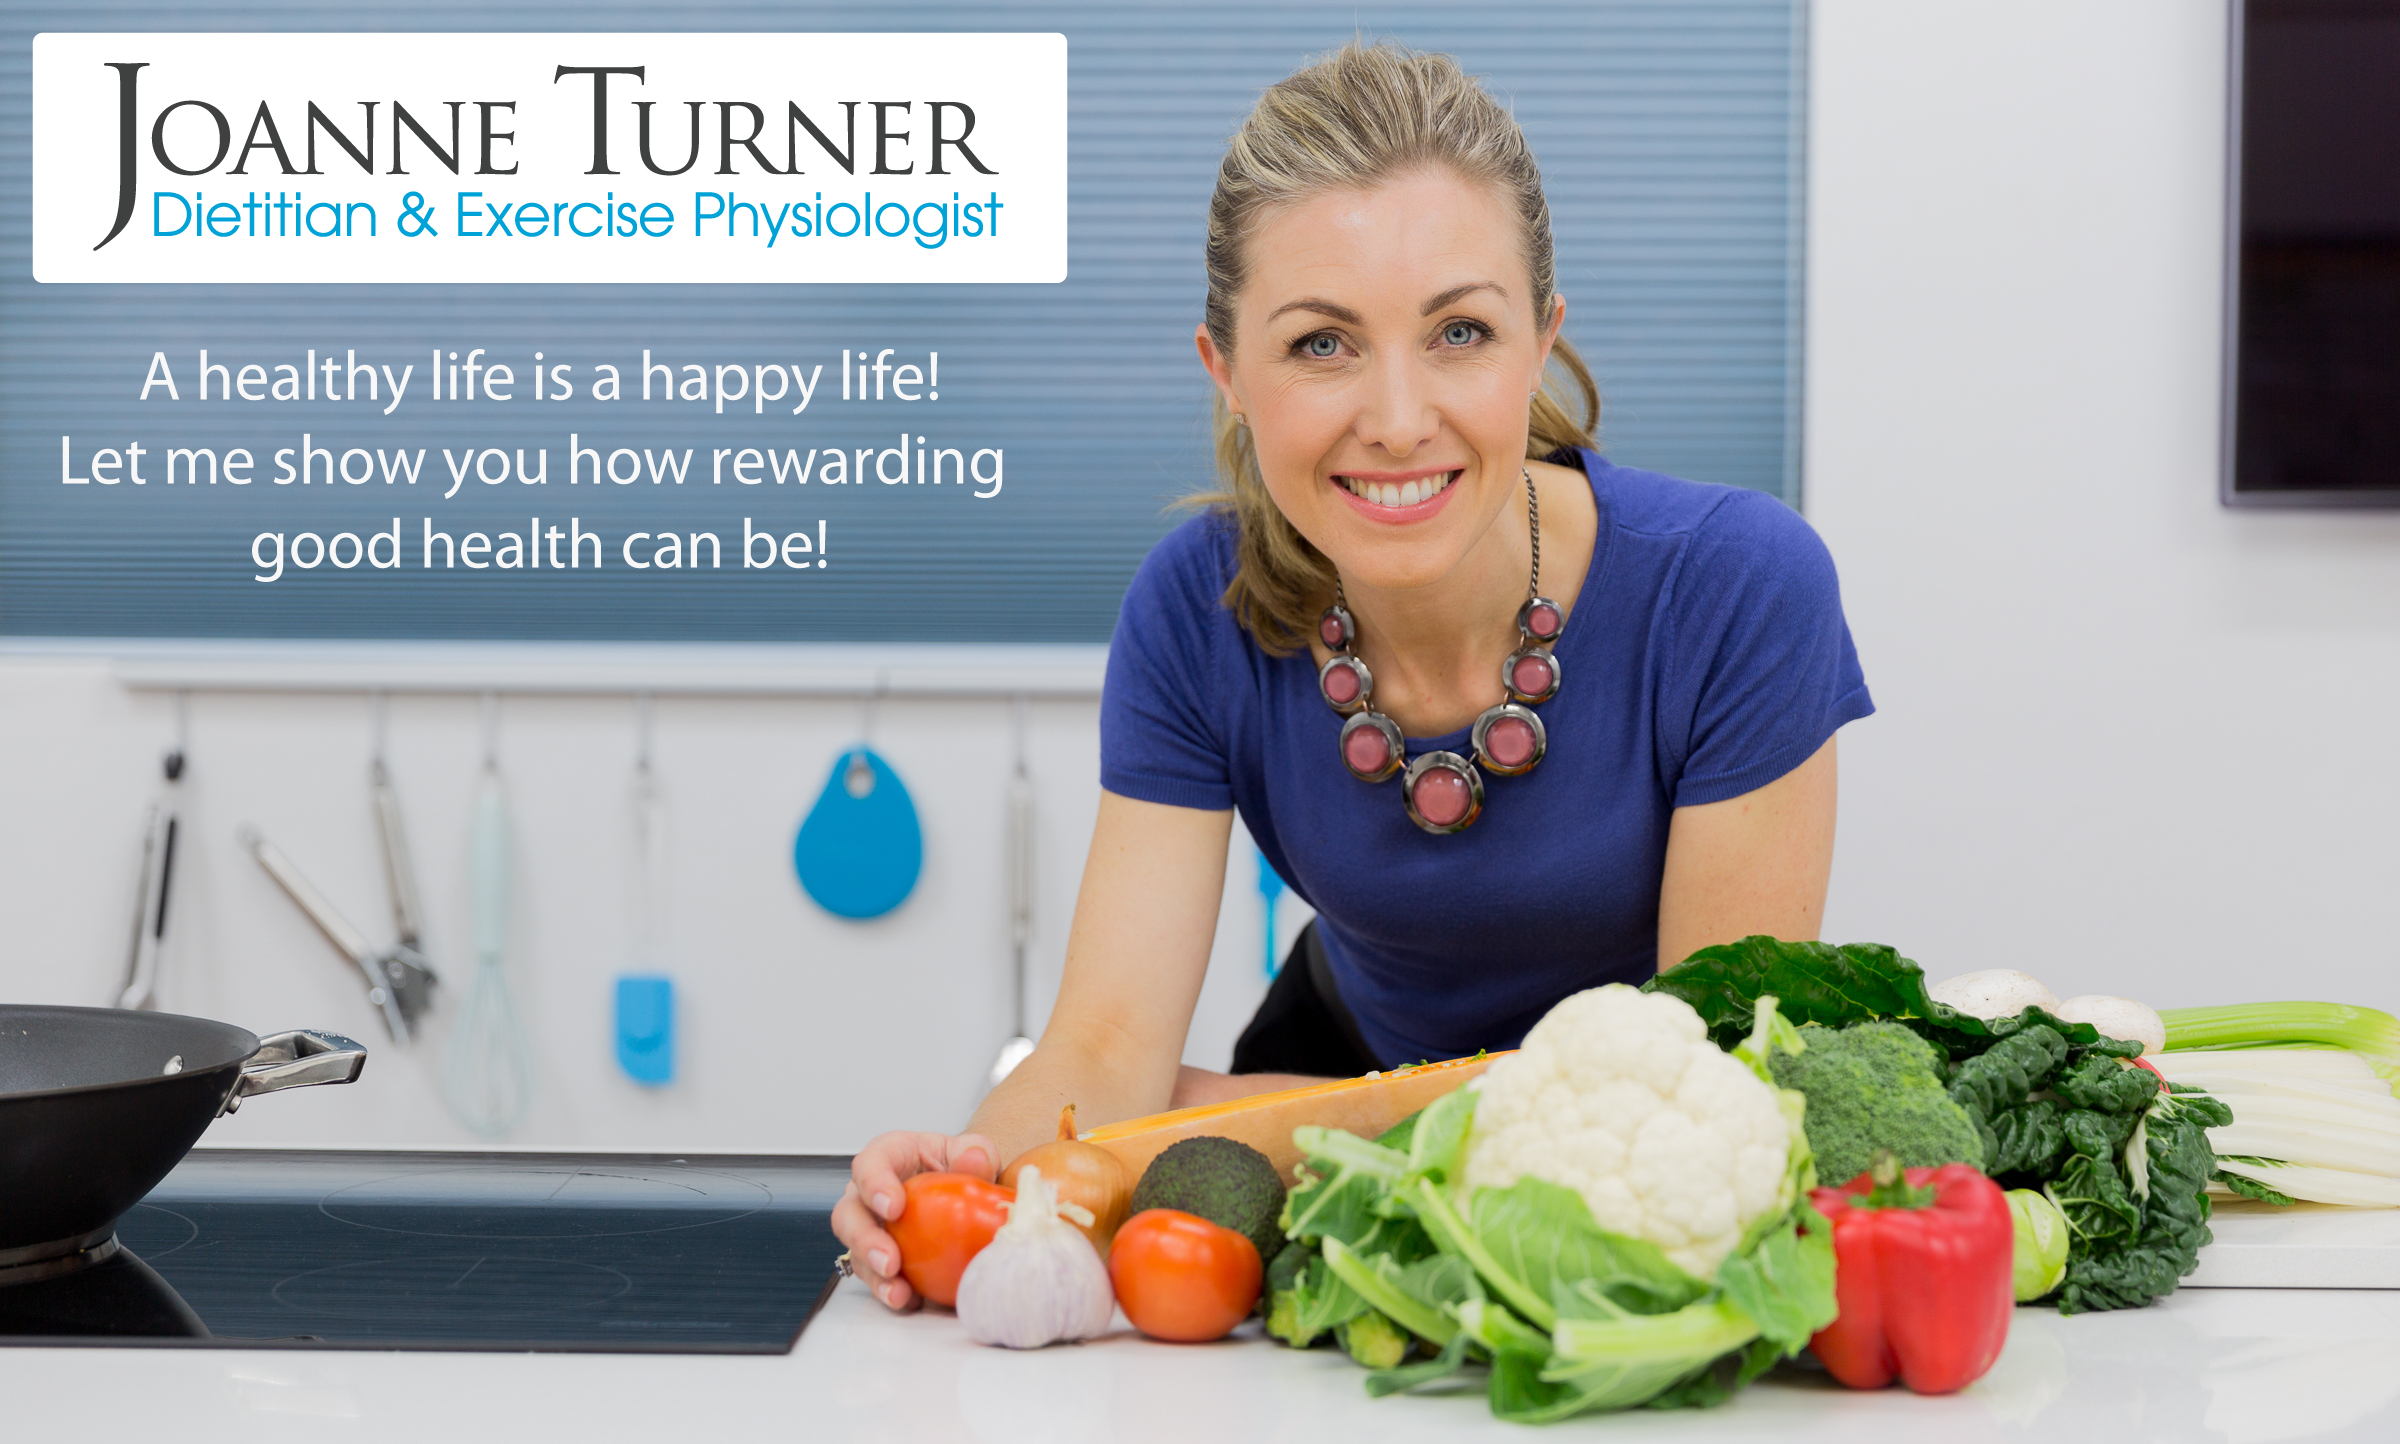 Joanne Turner Dietitian Exercise Physiologist